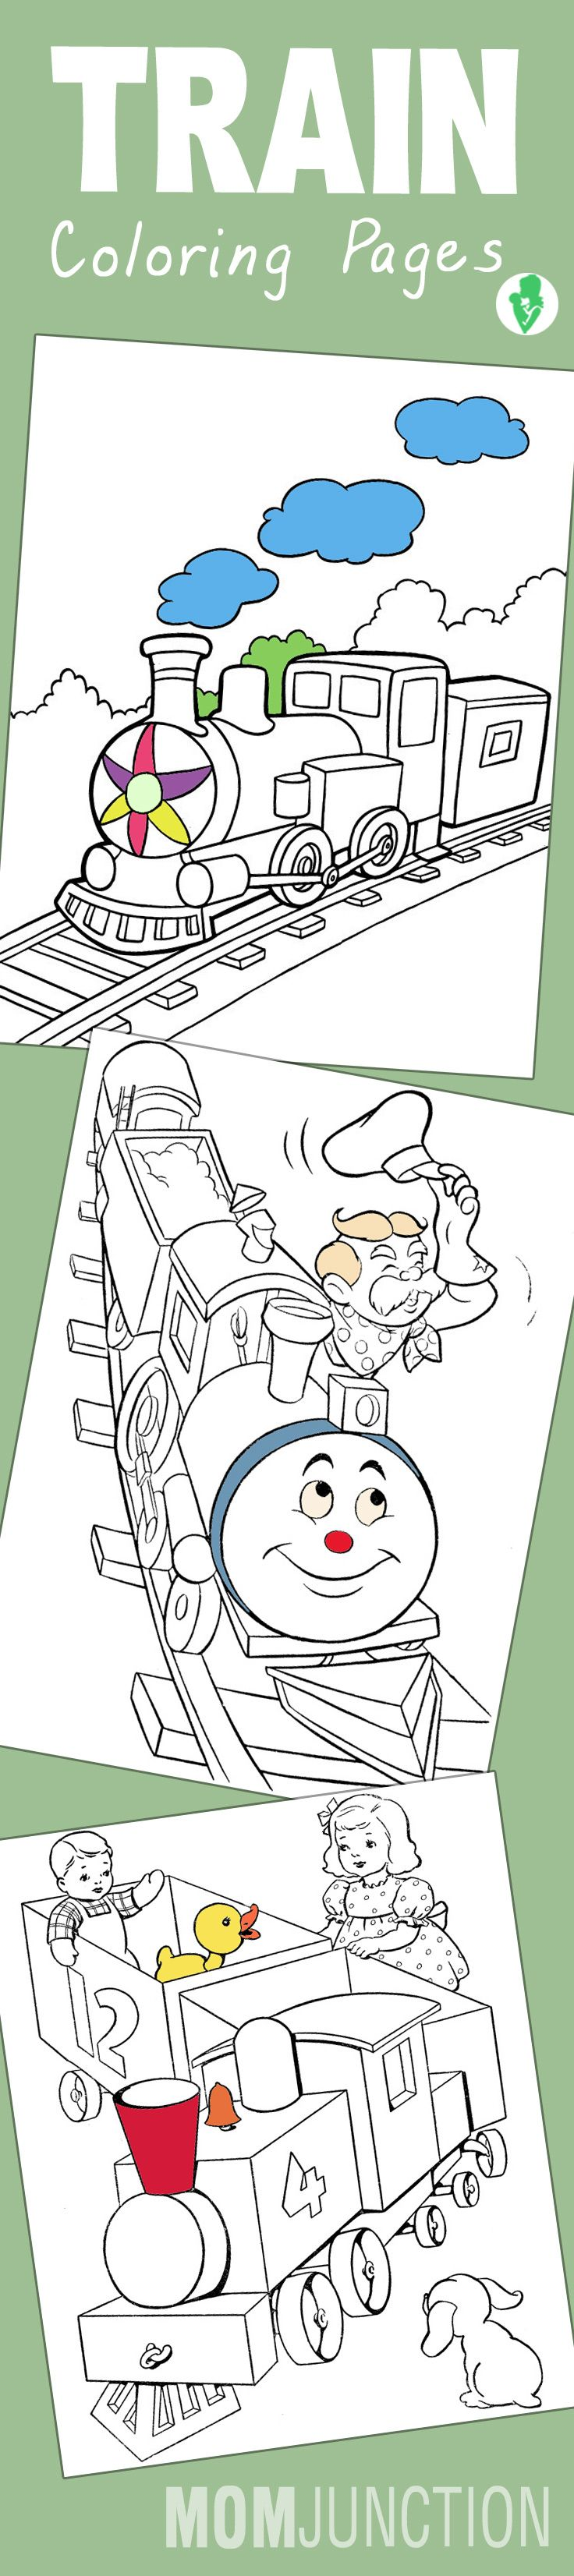 Train coloring pages for toddlers - 20 Best Train Coloring Pages Your Toddler Will Love To Color